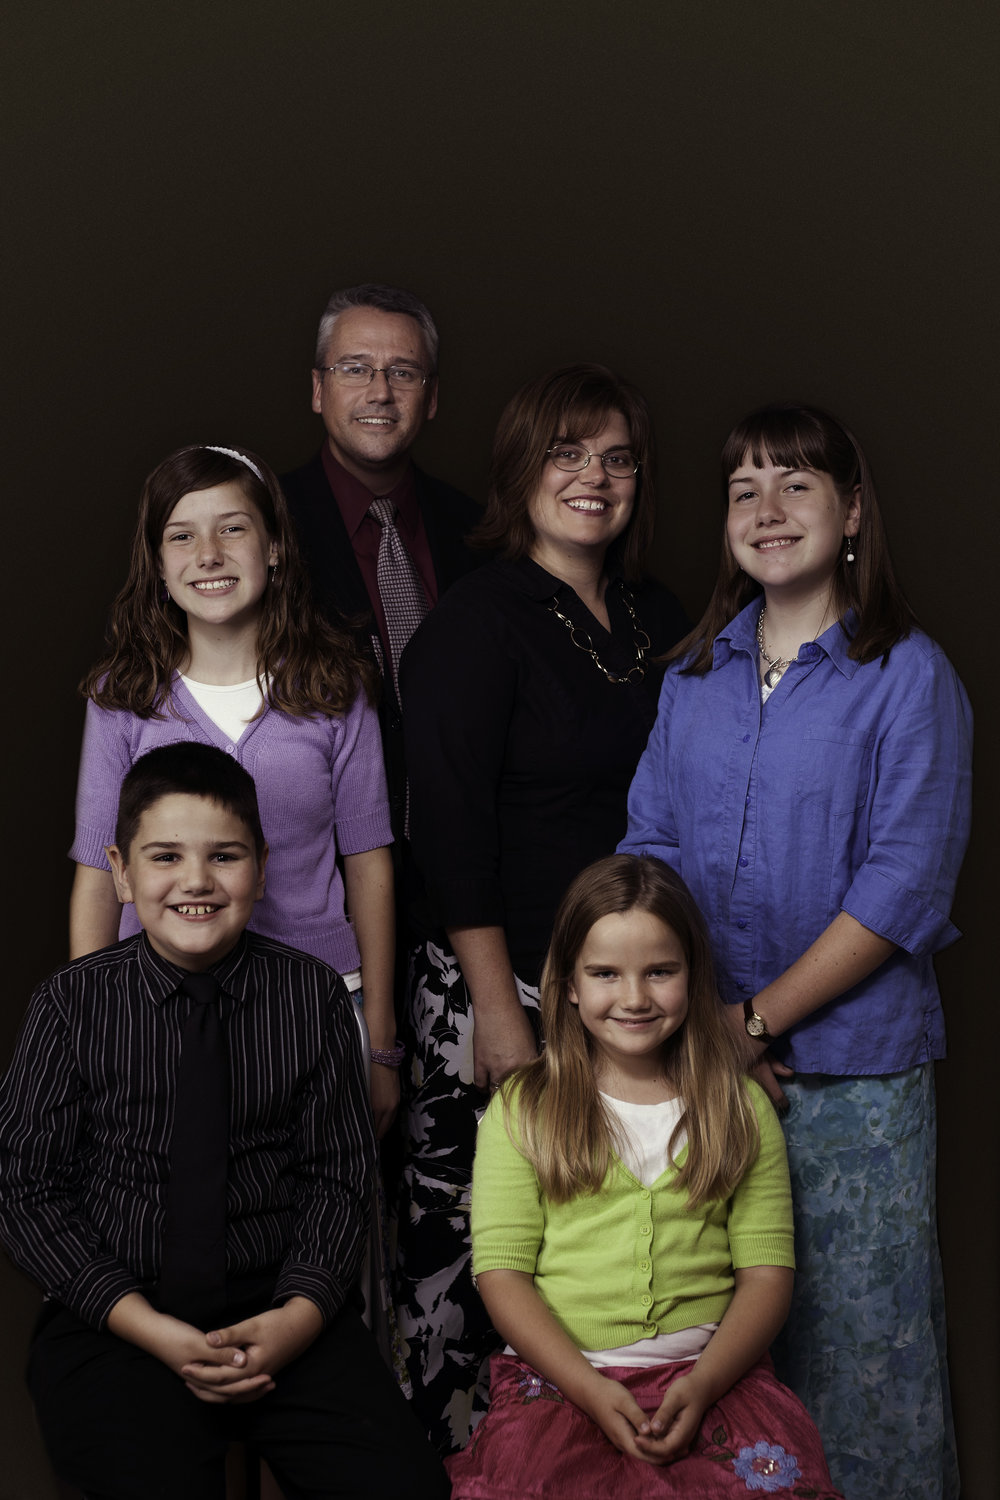 WorldView Ministries  7090 US Hwy. 36; Avon, IN 46123  Missionary E-mail: olacheadj@gmail.com